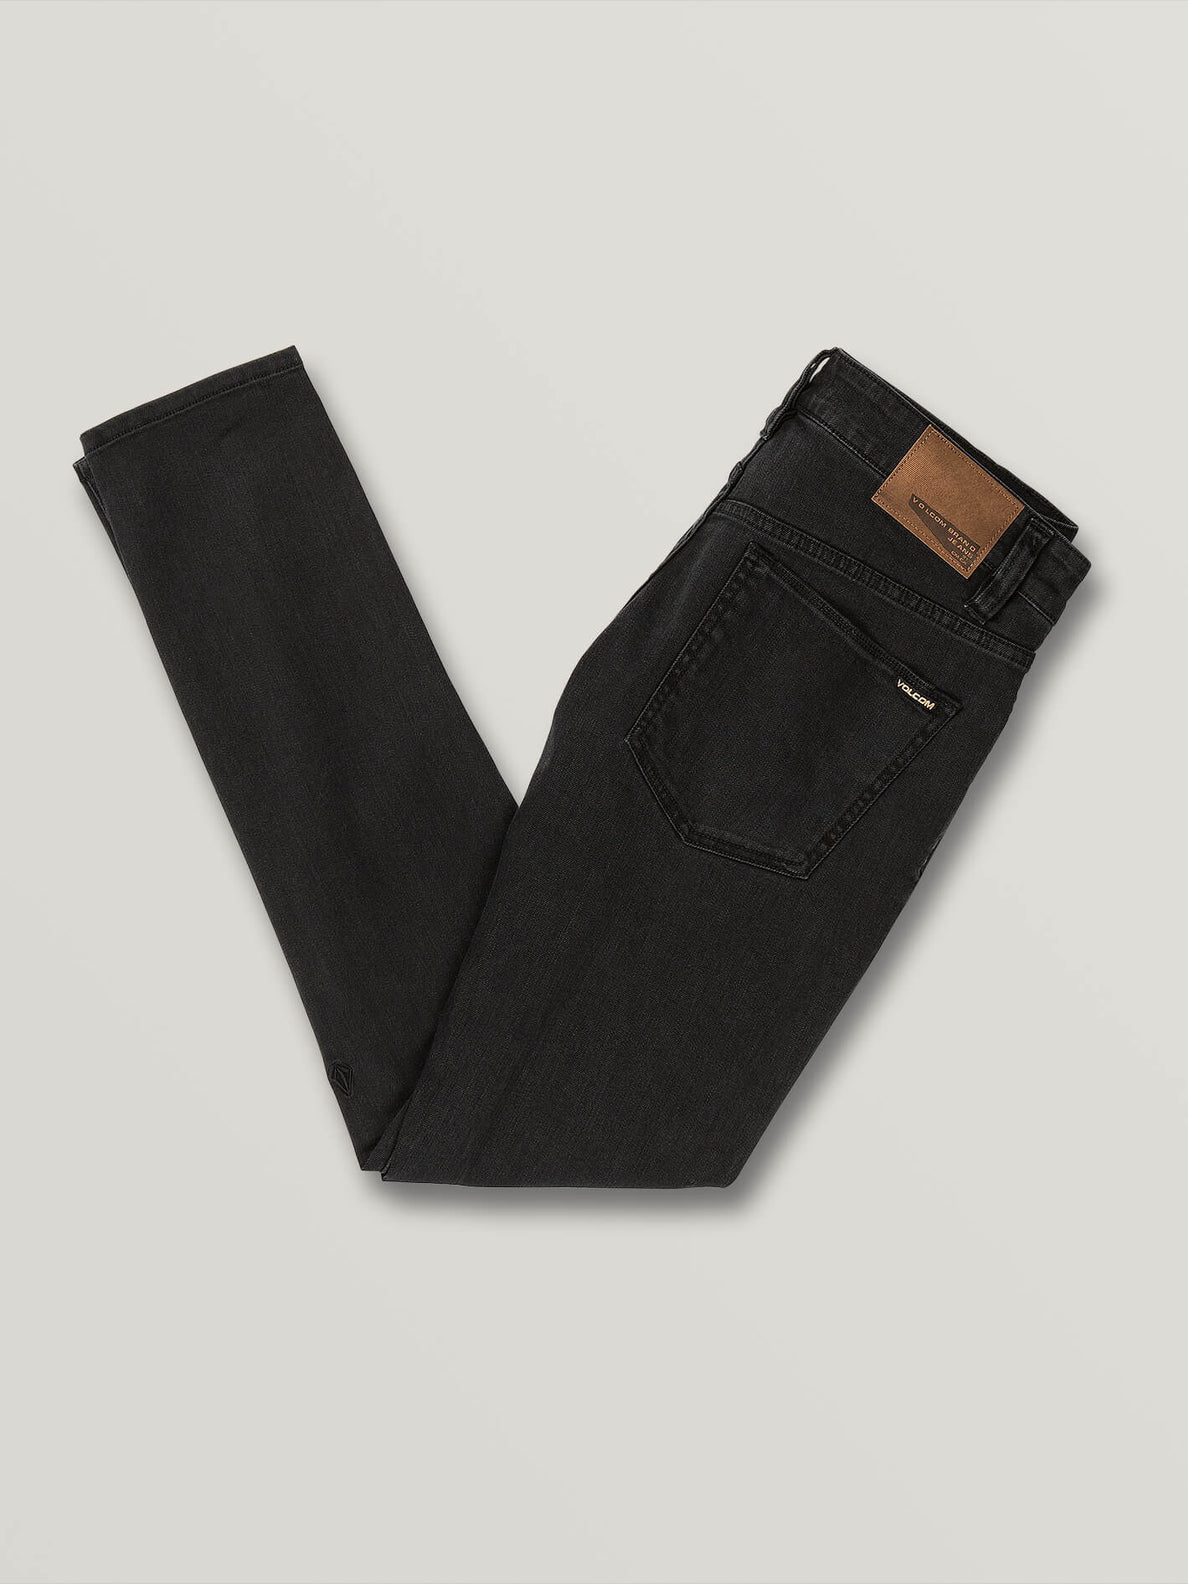 2X4 Tapered Skinny Fit Jeans - Ink Black (A1931610_INK) [B]